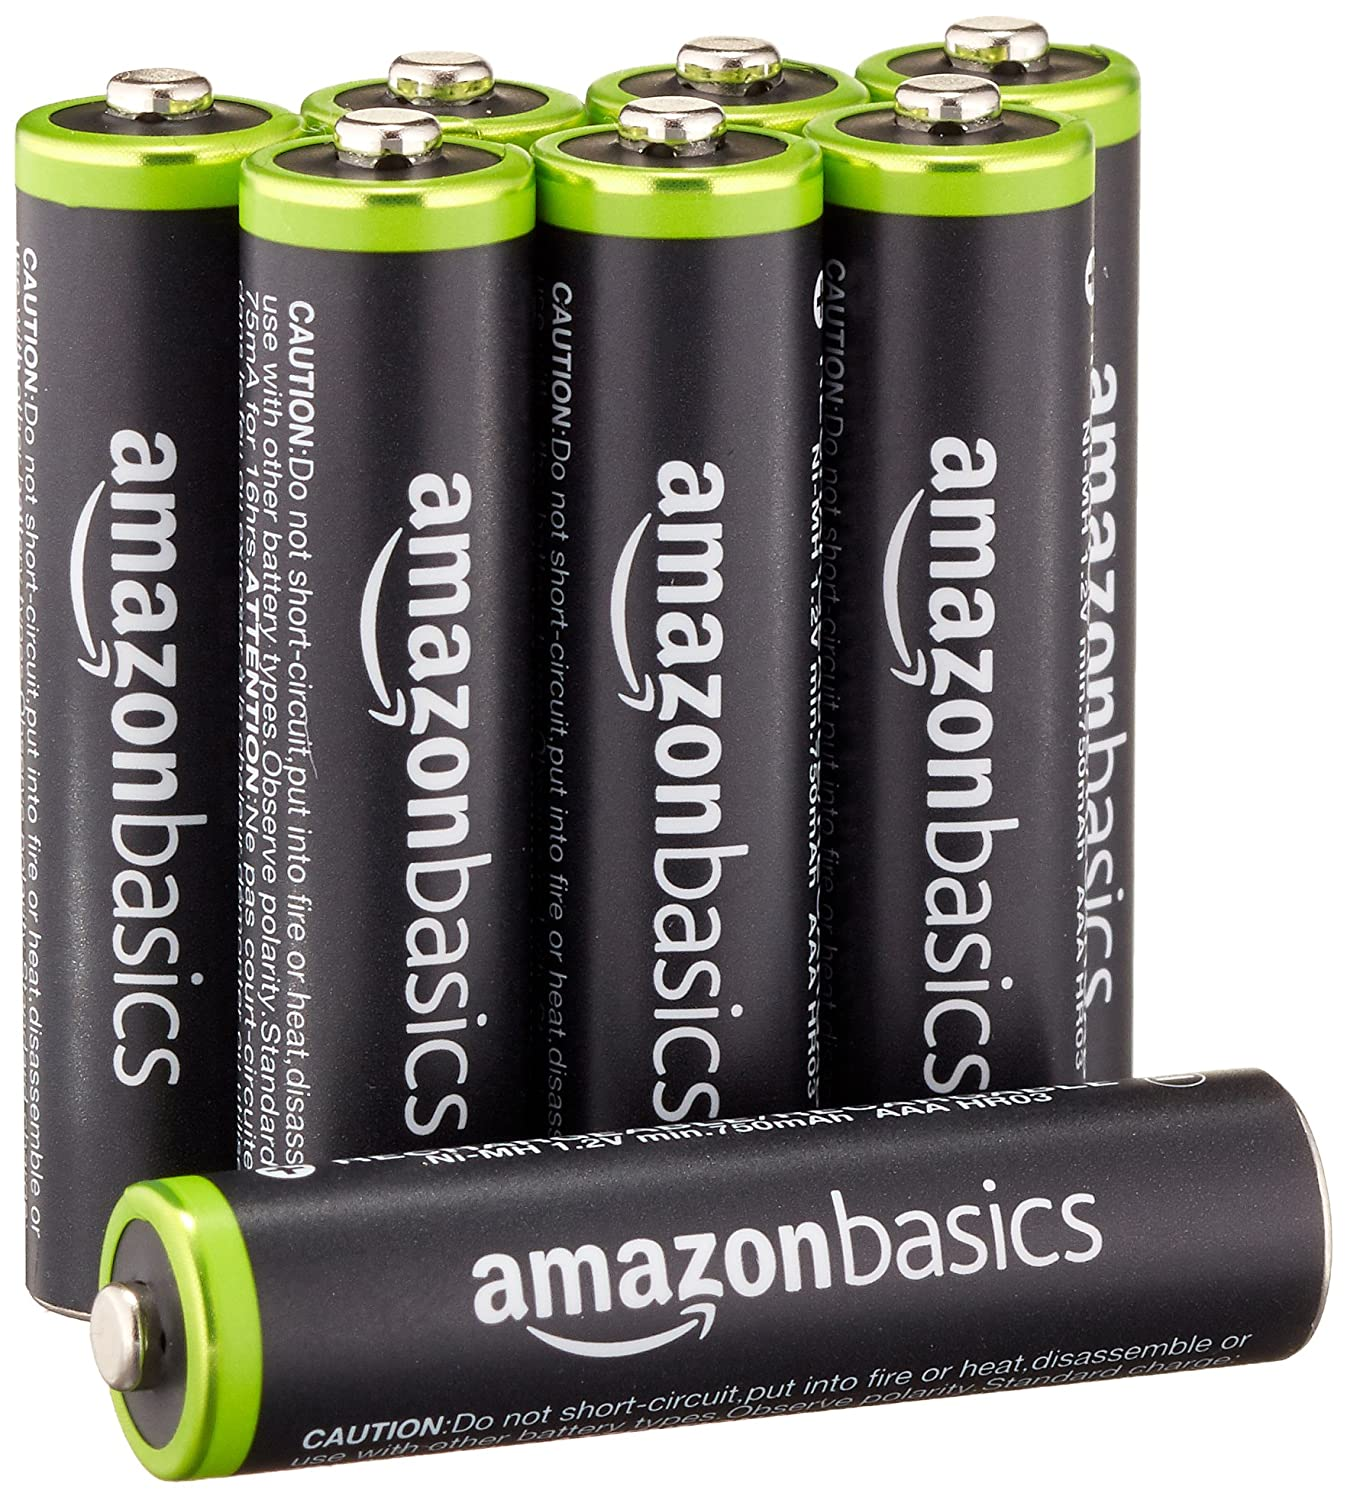 Amazon - 8-Pack AAA 800mAh Rechargeable Batteries - $9.49